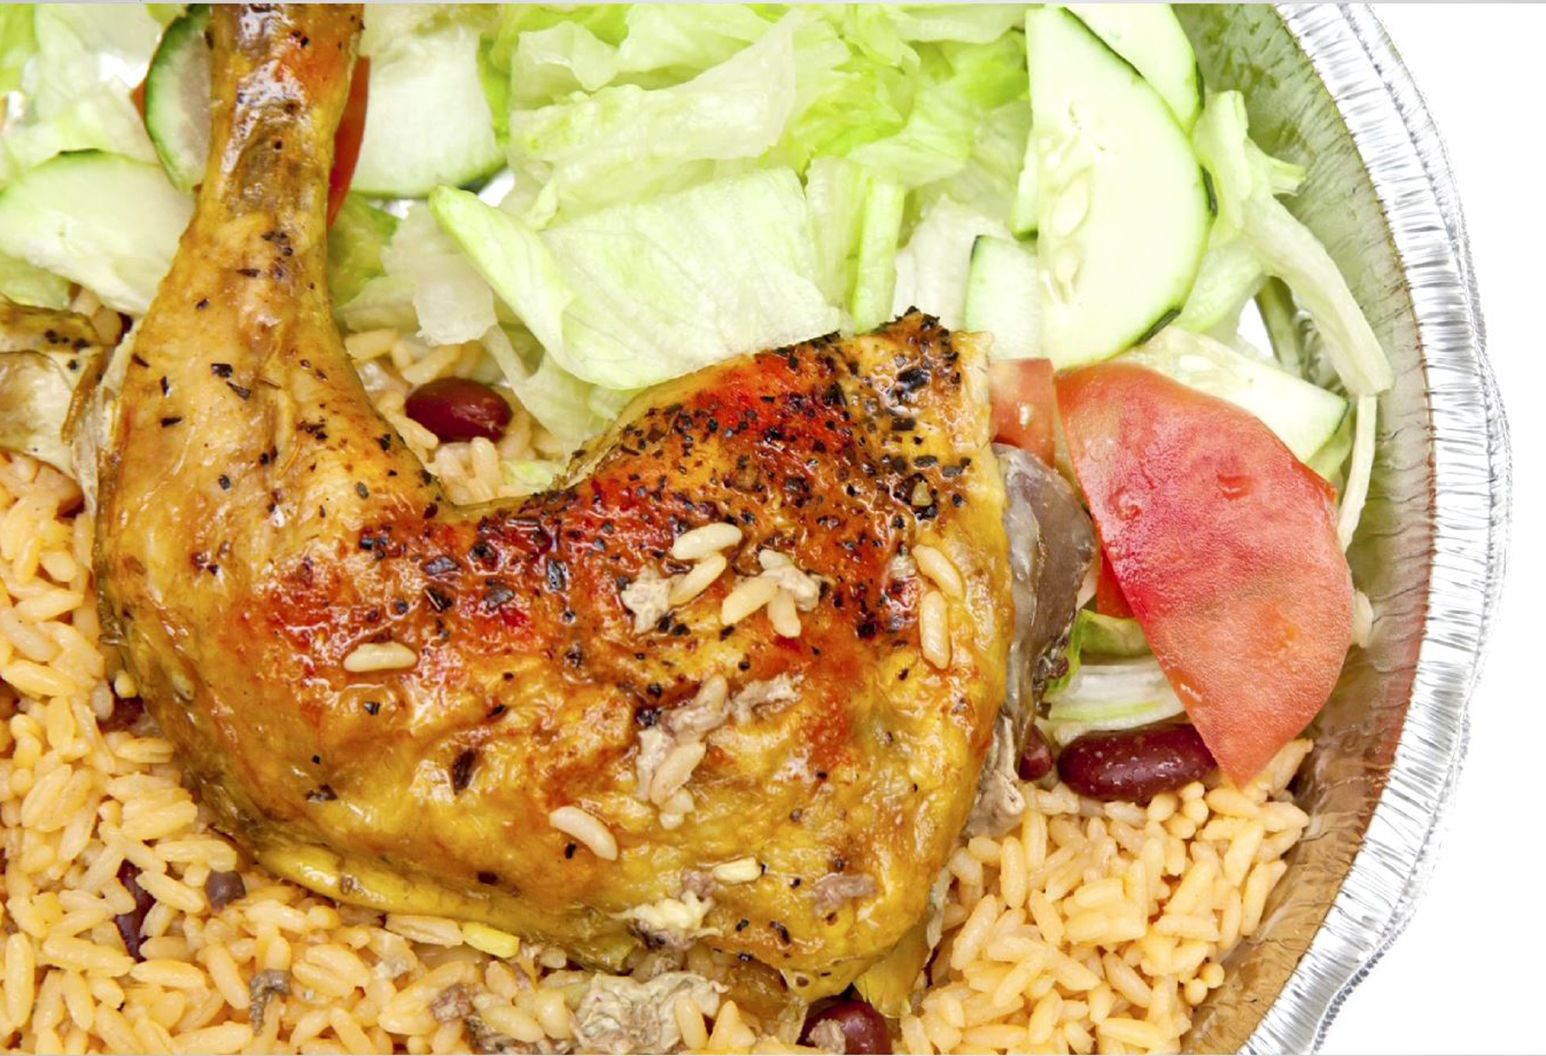 Close up photograph of a plate of chicken, rice, and salad